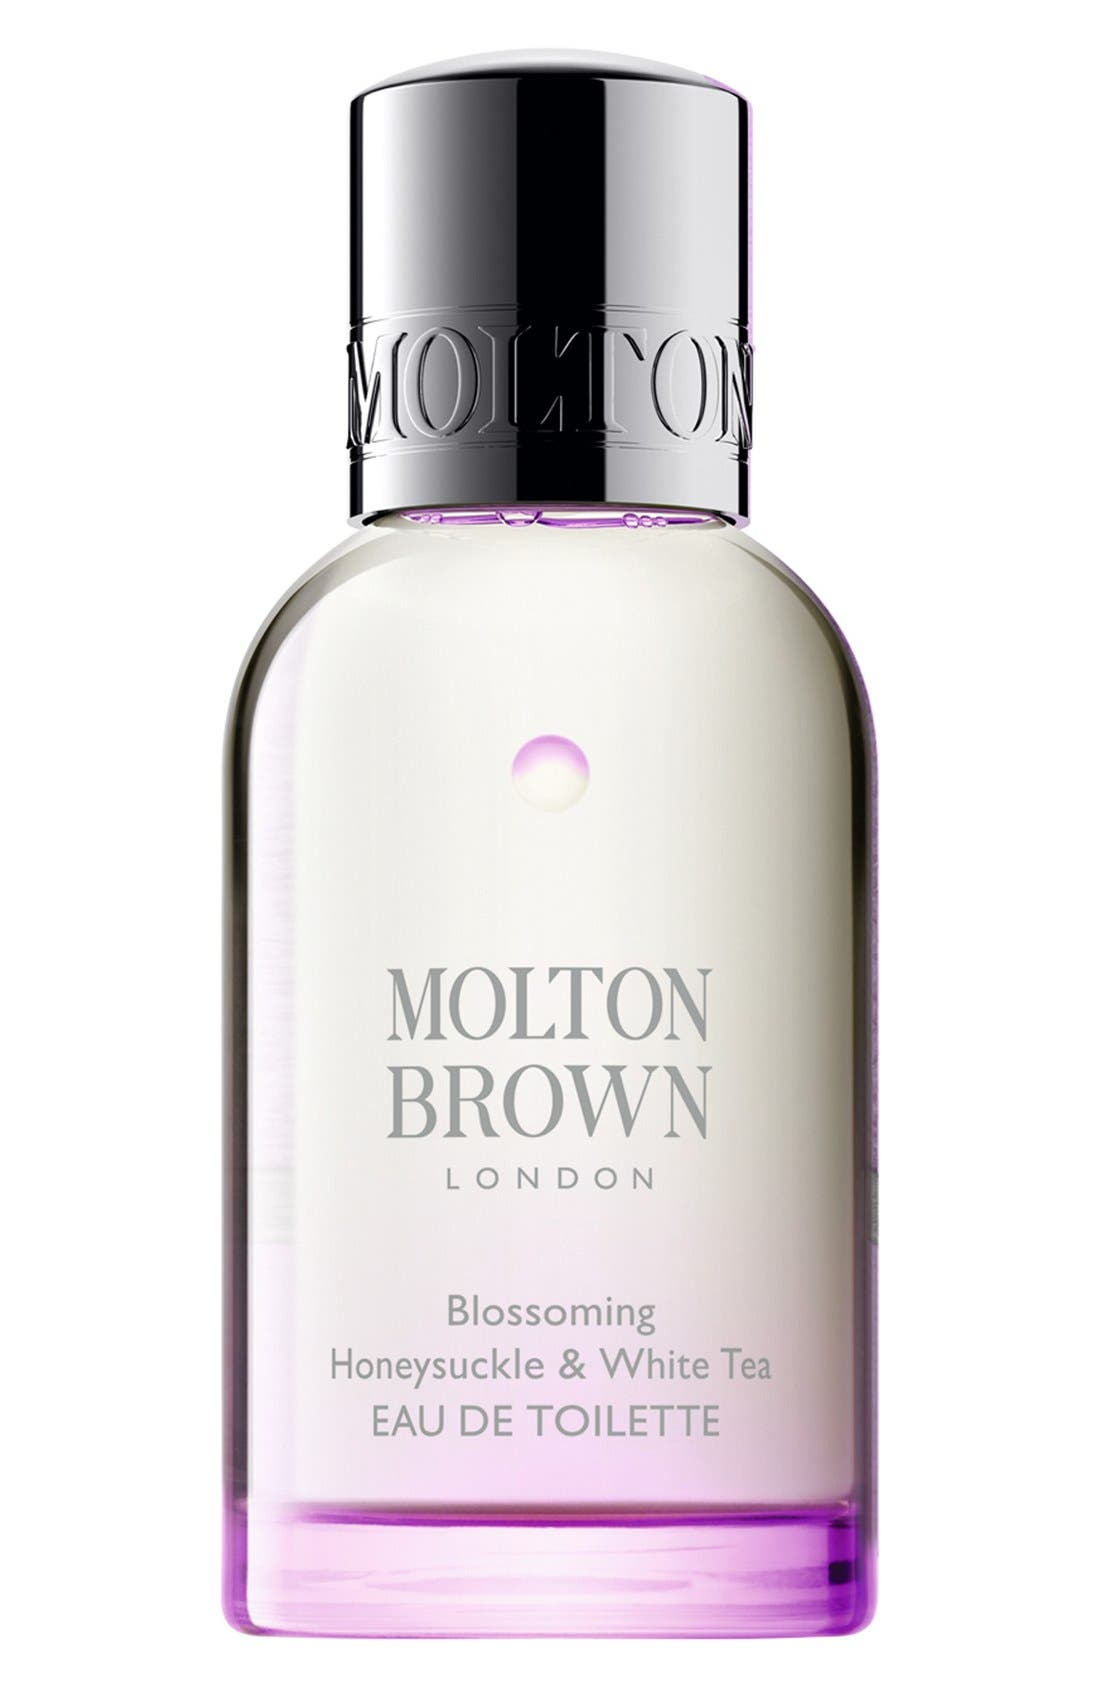 MOLTON BROWN London Blossoming Honeysuckle & White Tea Eau de Toilette